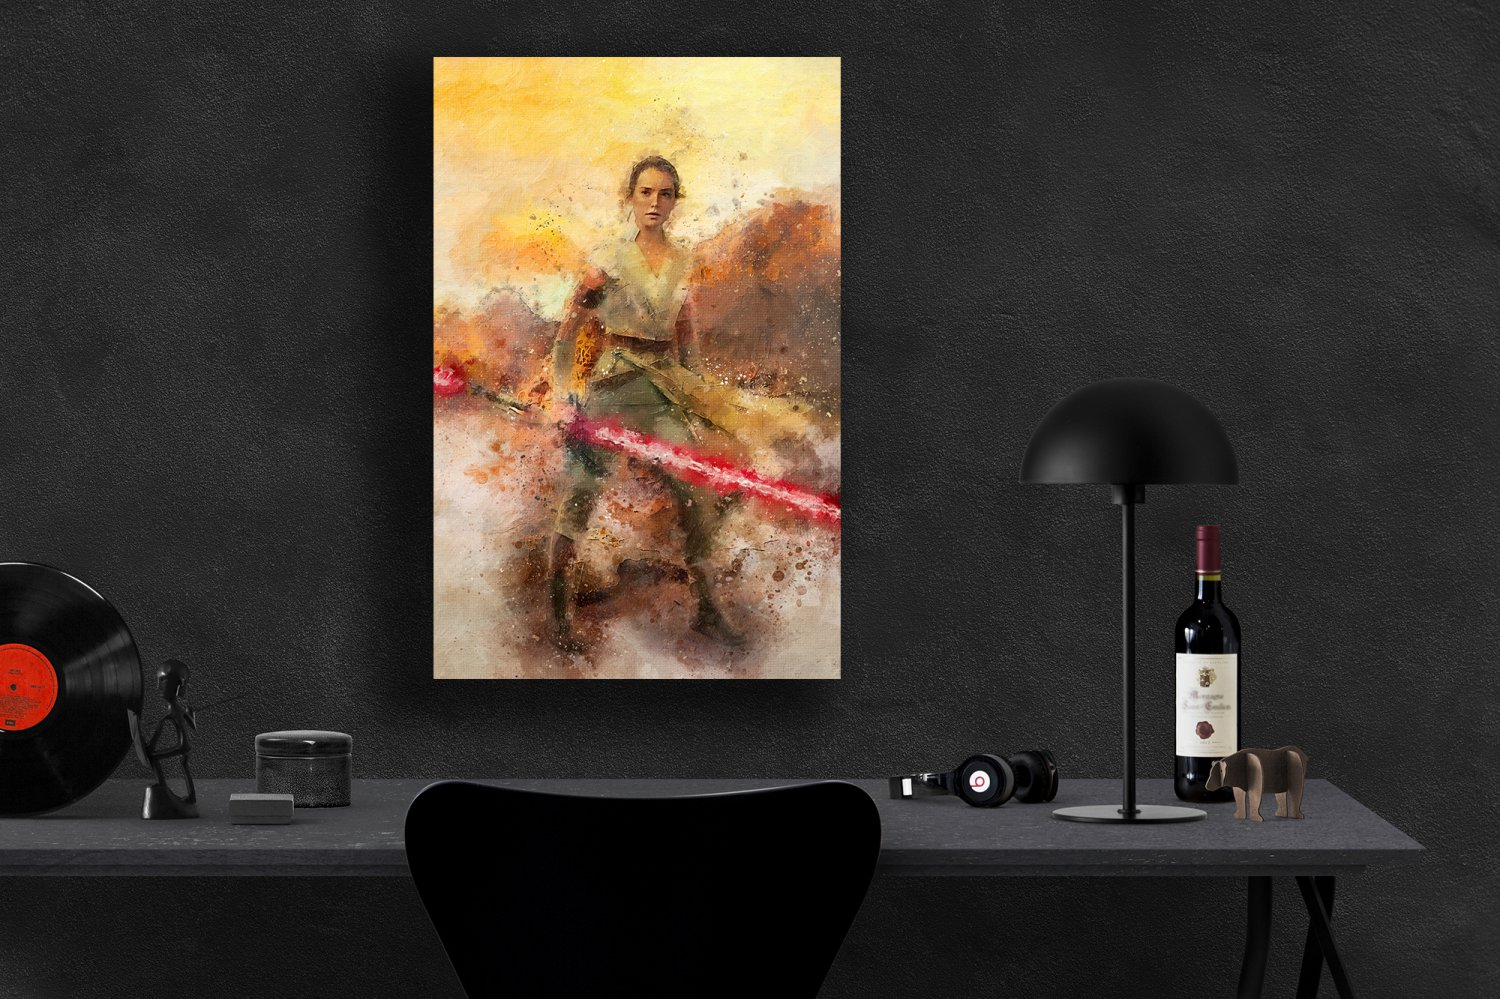 Star Wars, Rey, Daisy Ridley, The Rise of Skywalker  18x28 inches Canvas Print